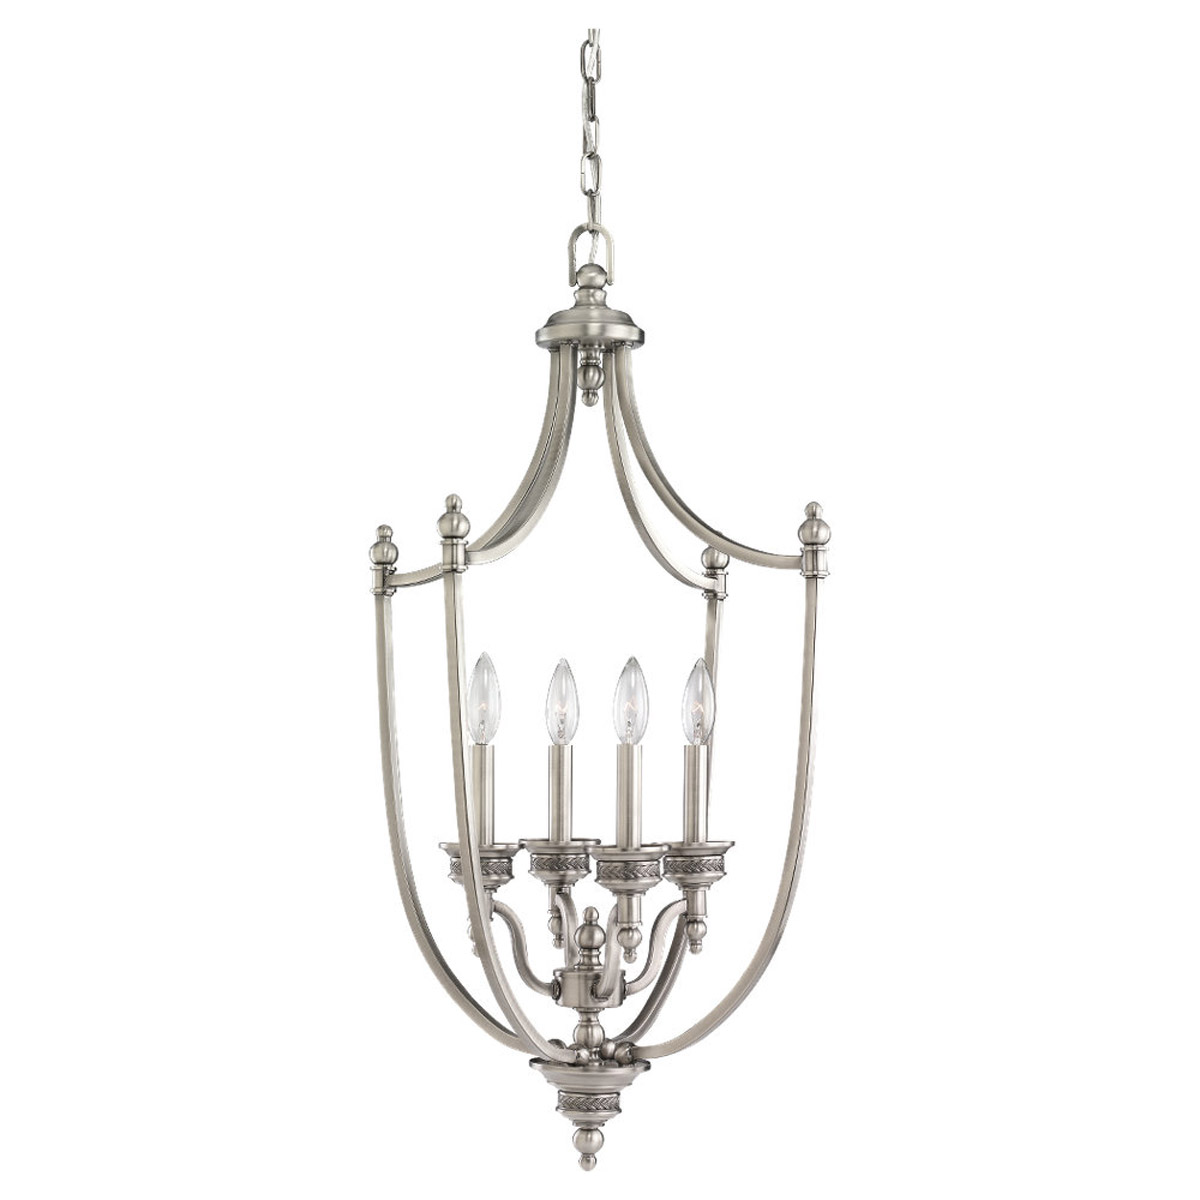 Sea Gull Lighting Laurel Leaf 4 Light Foyer Pendant in Antique Brushed Nickel 51350-965